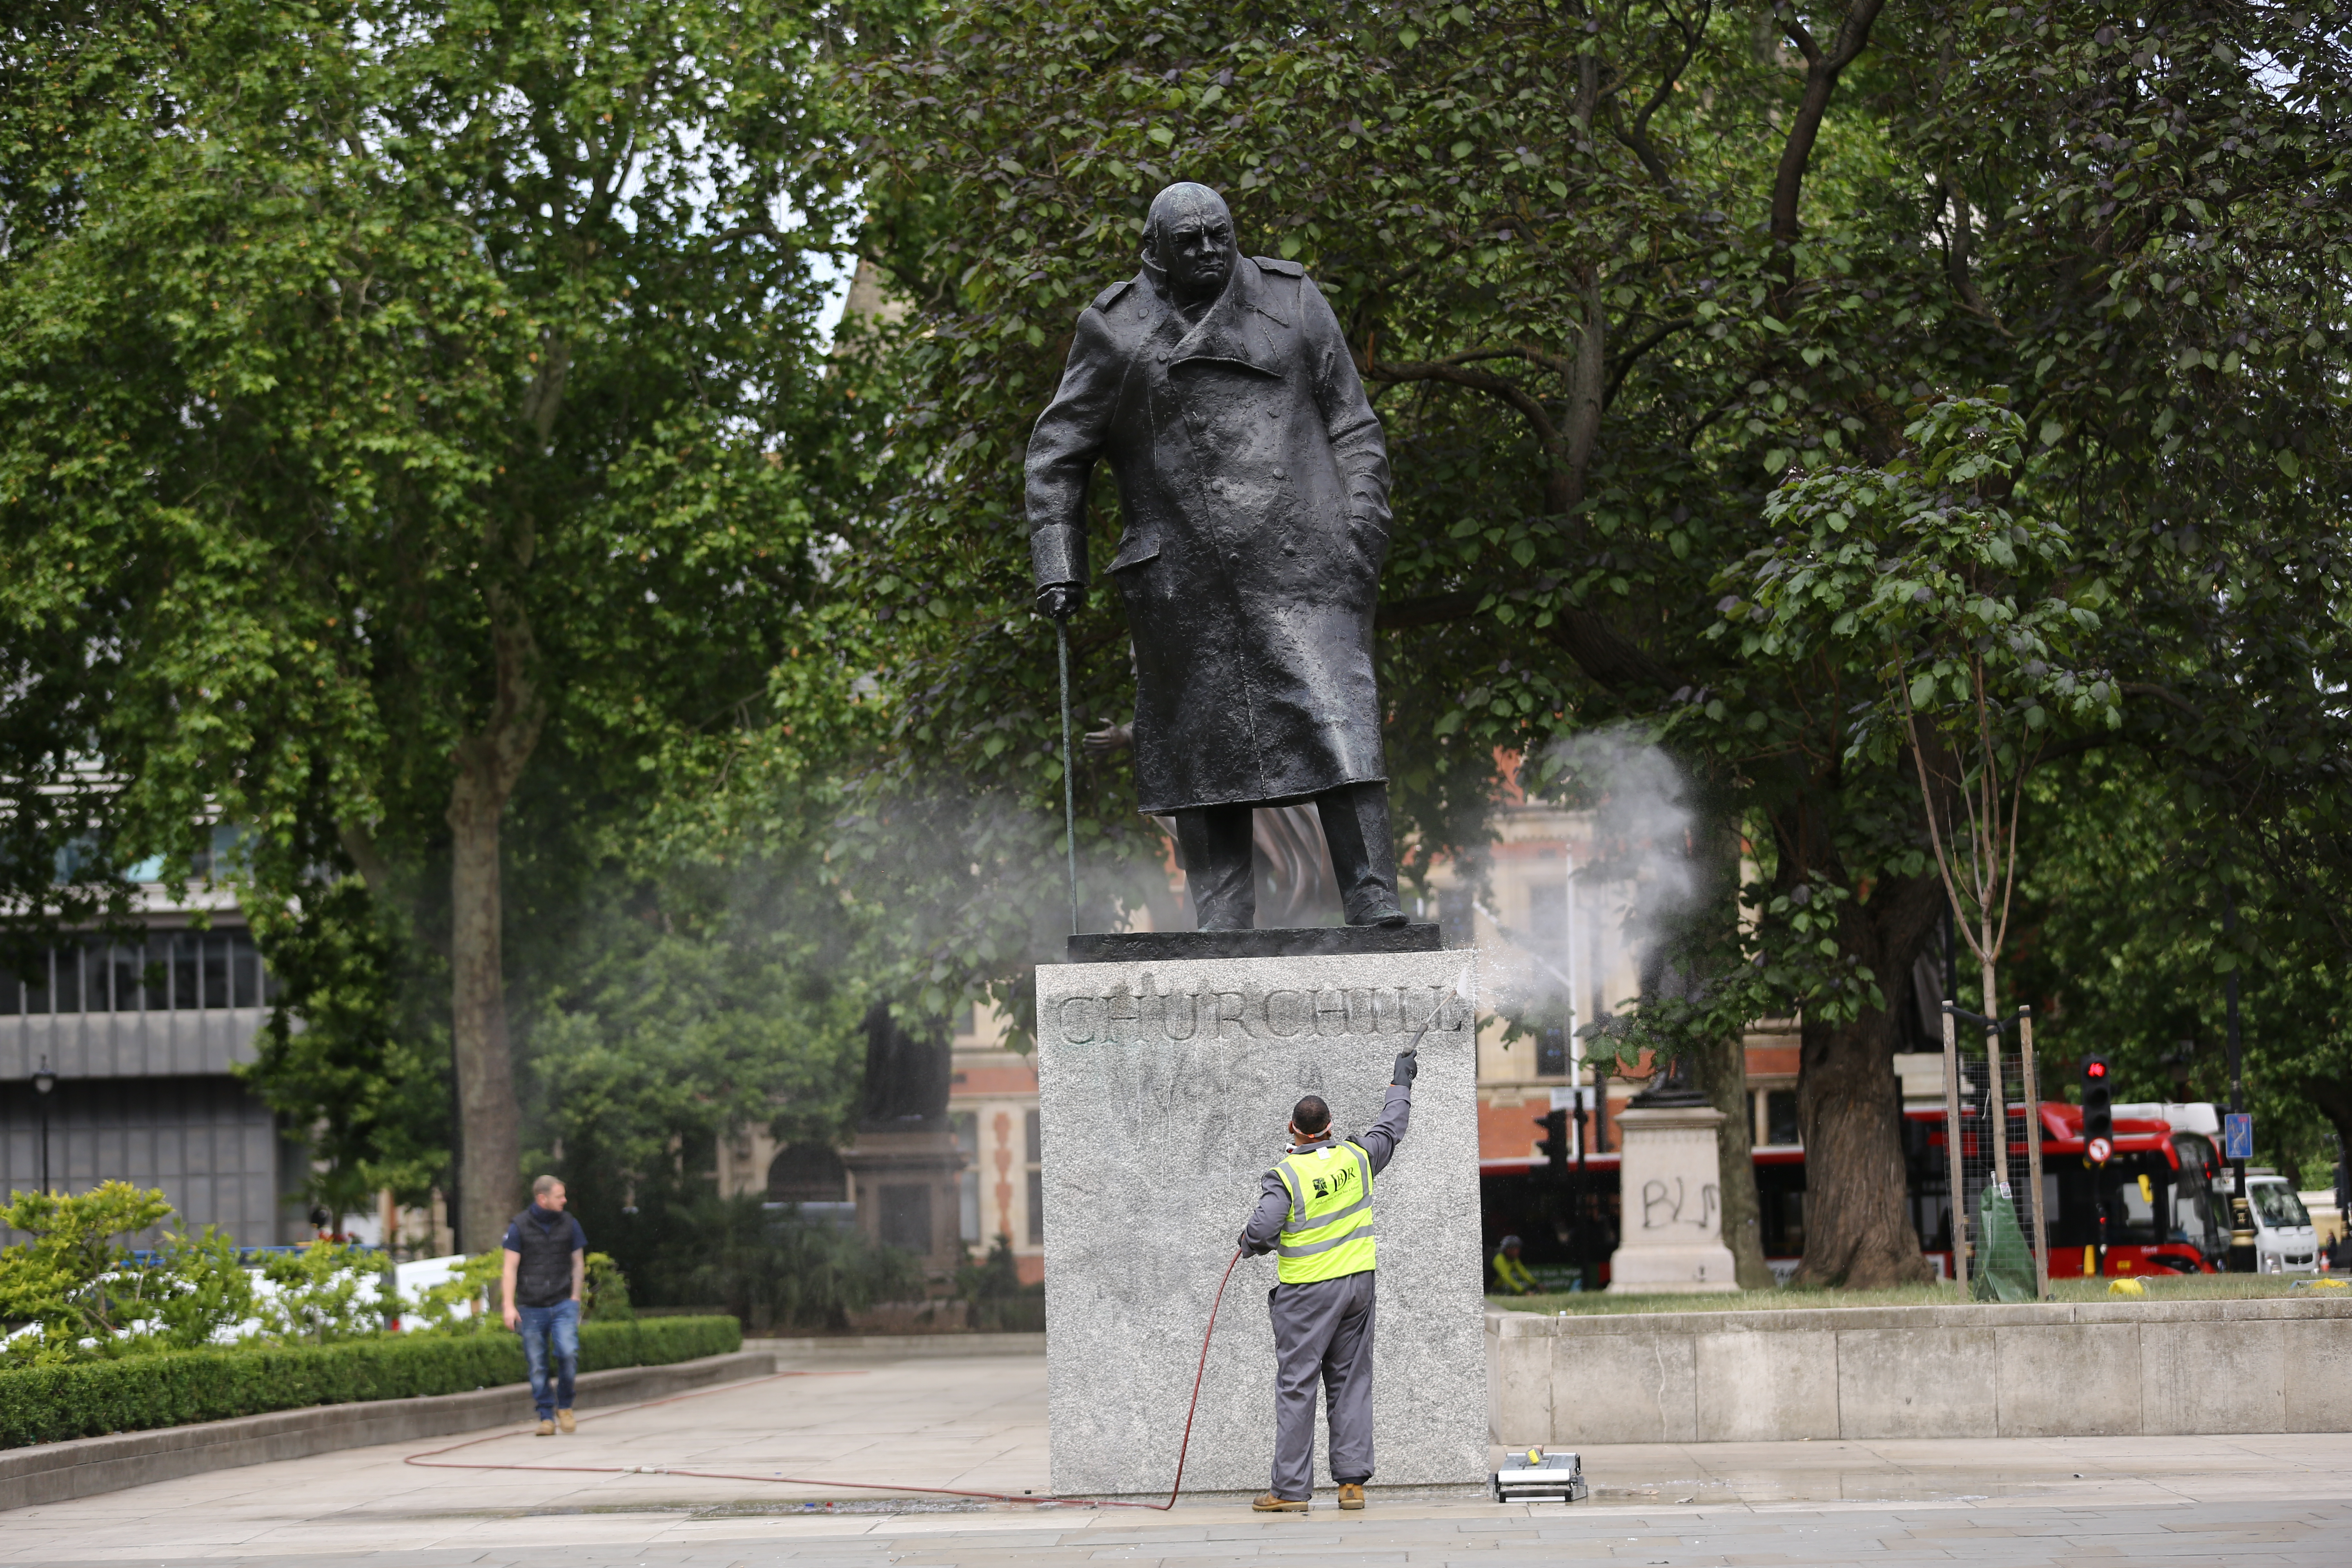 A worker cleans graffiti from the plinth of the statue of Sir Winston Churchill at Parliament Square in London, following a Black Lives Matter protest at the weekend. A raft of protests across the UK were sparked by the death of George Floyd, who was killed on May 25 while in police custody in the US city of Minneapolis.